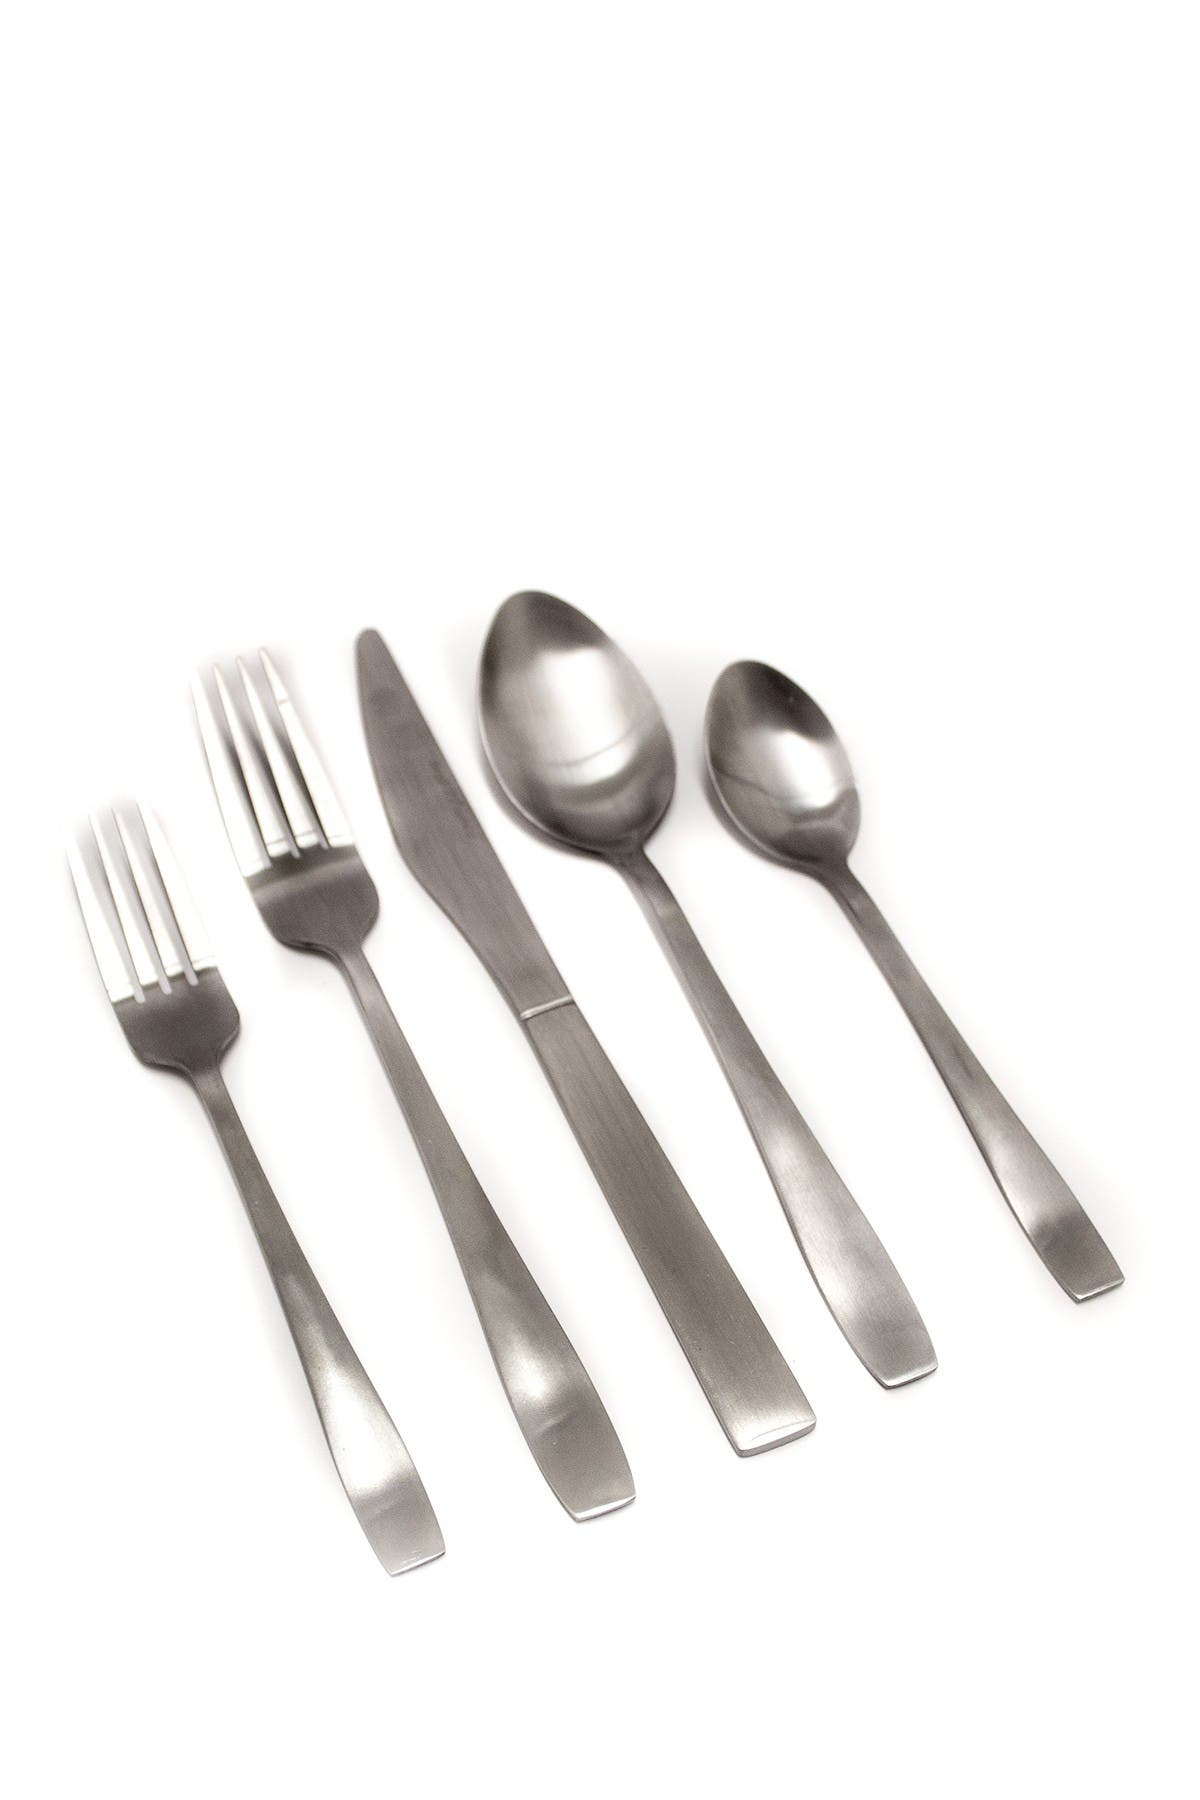 Image of BergHOFF Taper Flatware Set - 20 Piece Set